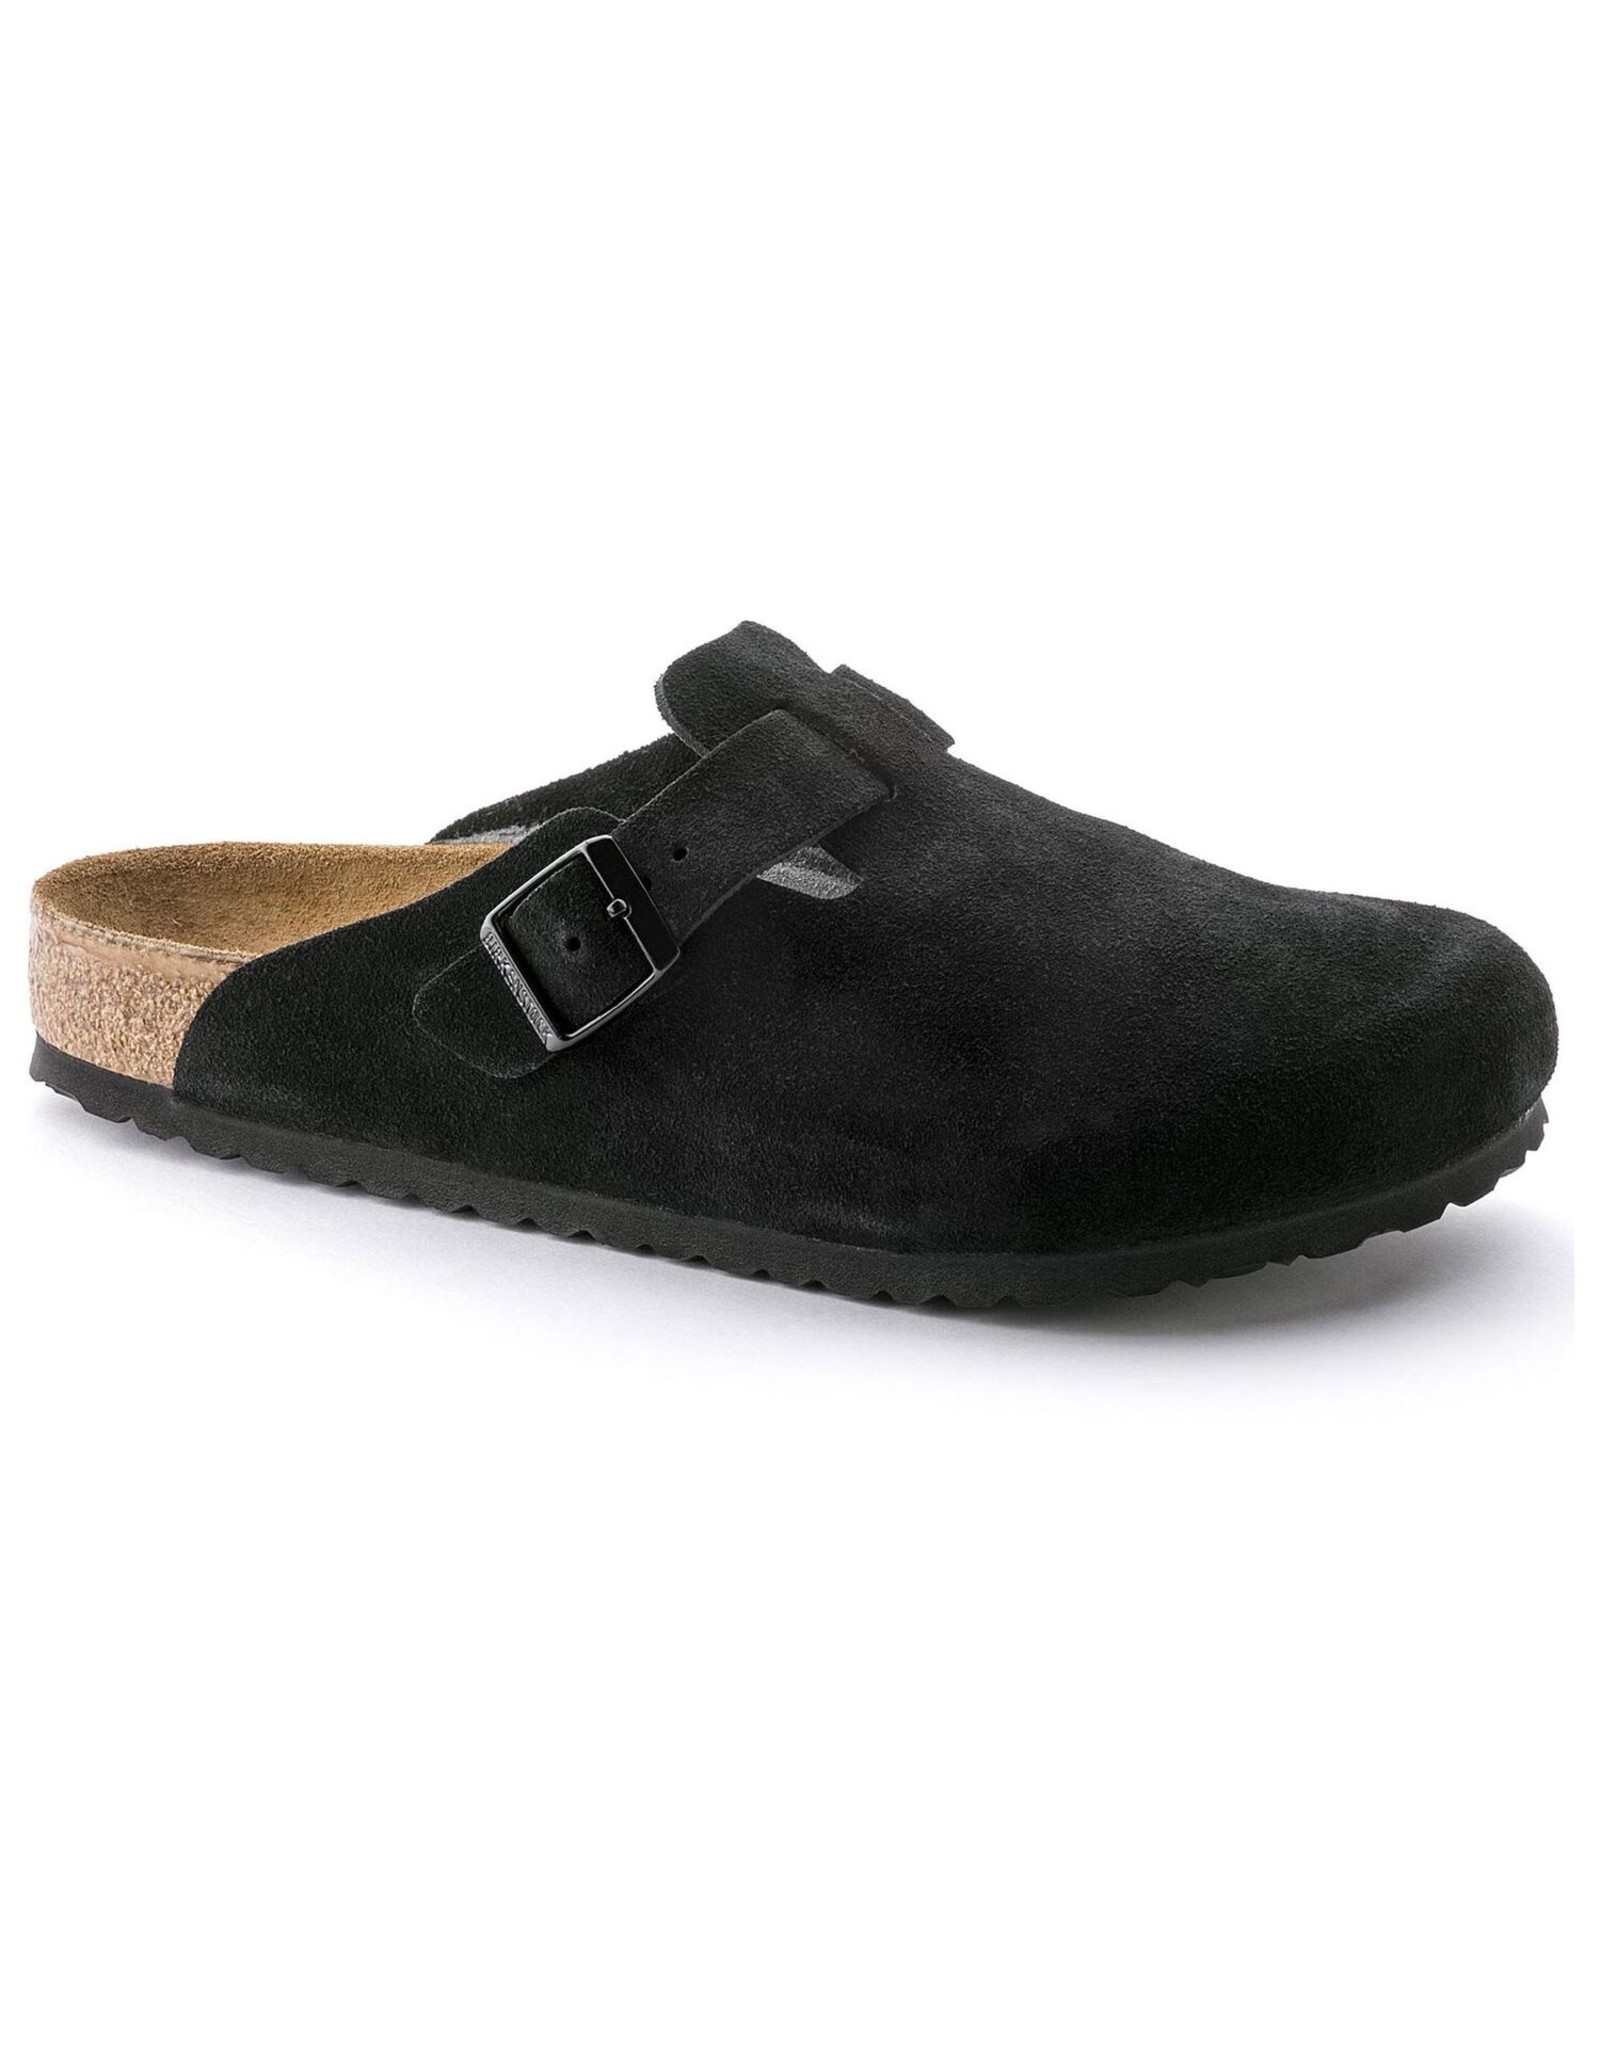 BIRKENSTOCK BOSTON SOFT FOOTBED SUEDE LEATHER-BLACK